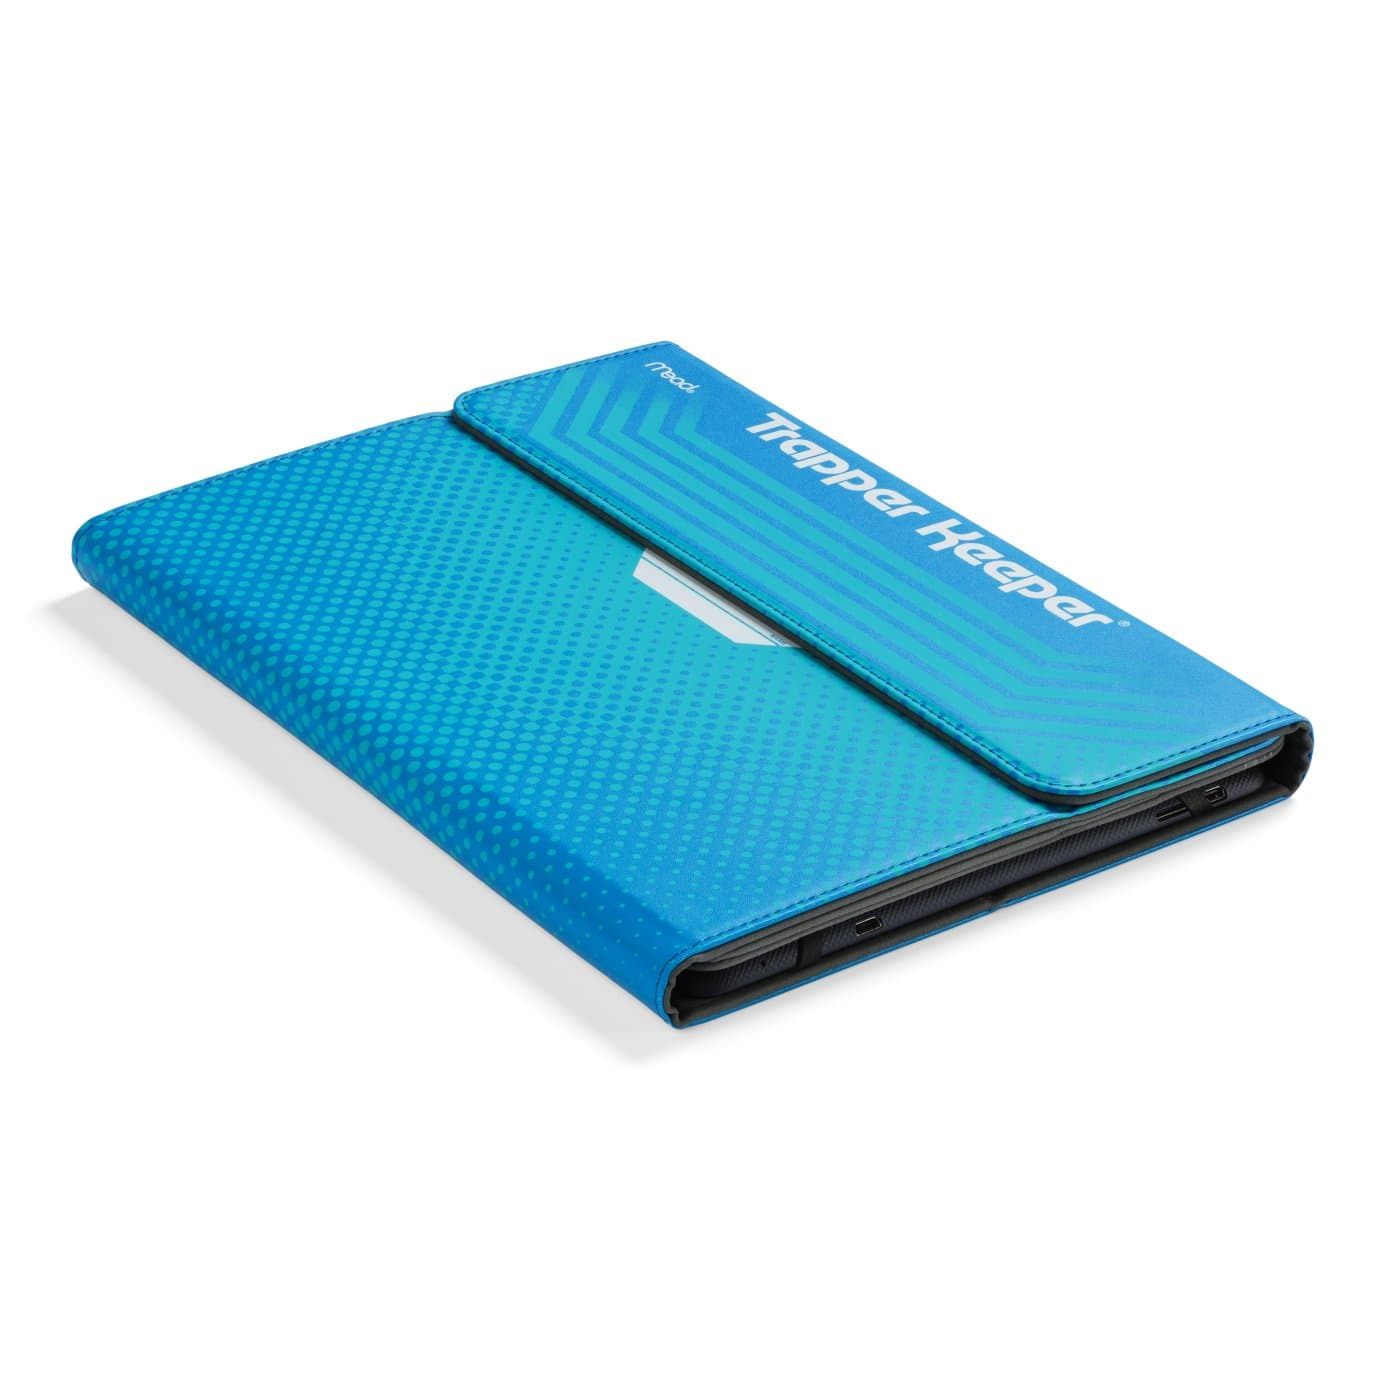 Trapper Keeper Ipad case